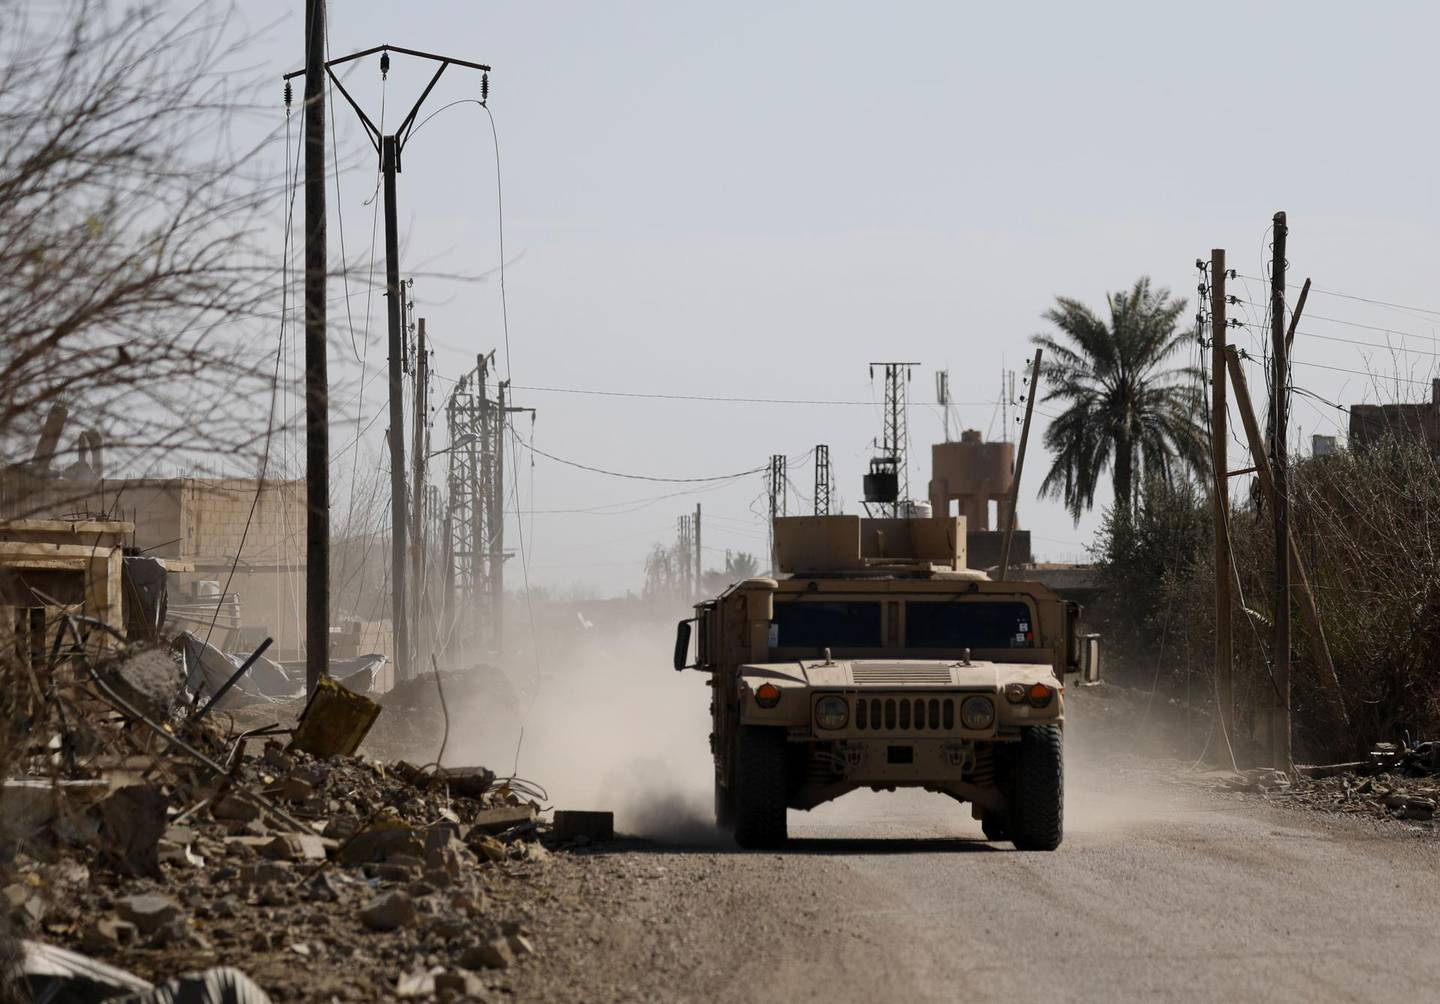 An armoured vehicle belonging to the Syrian Democratic Forces (SDF) drives in the front line village of Baghouz in the countryside of the eastern Syrian Deir Ezzor province, on the border with Iraq, on February 2, 2019.  The US-backed Syrian Democratic Forces halted their ground assault on IS's final shreds of territory last week as the jihadists increasingly used civilians as human shields to block the advance.  / AFP / DELIL SOULEIMAN